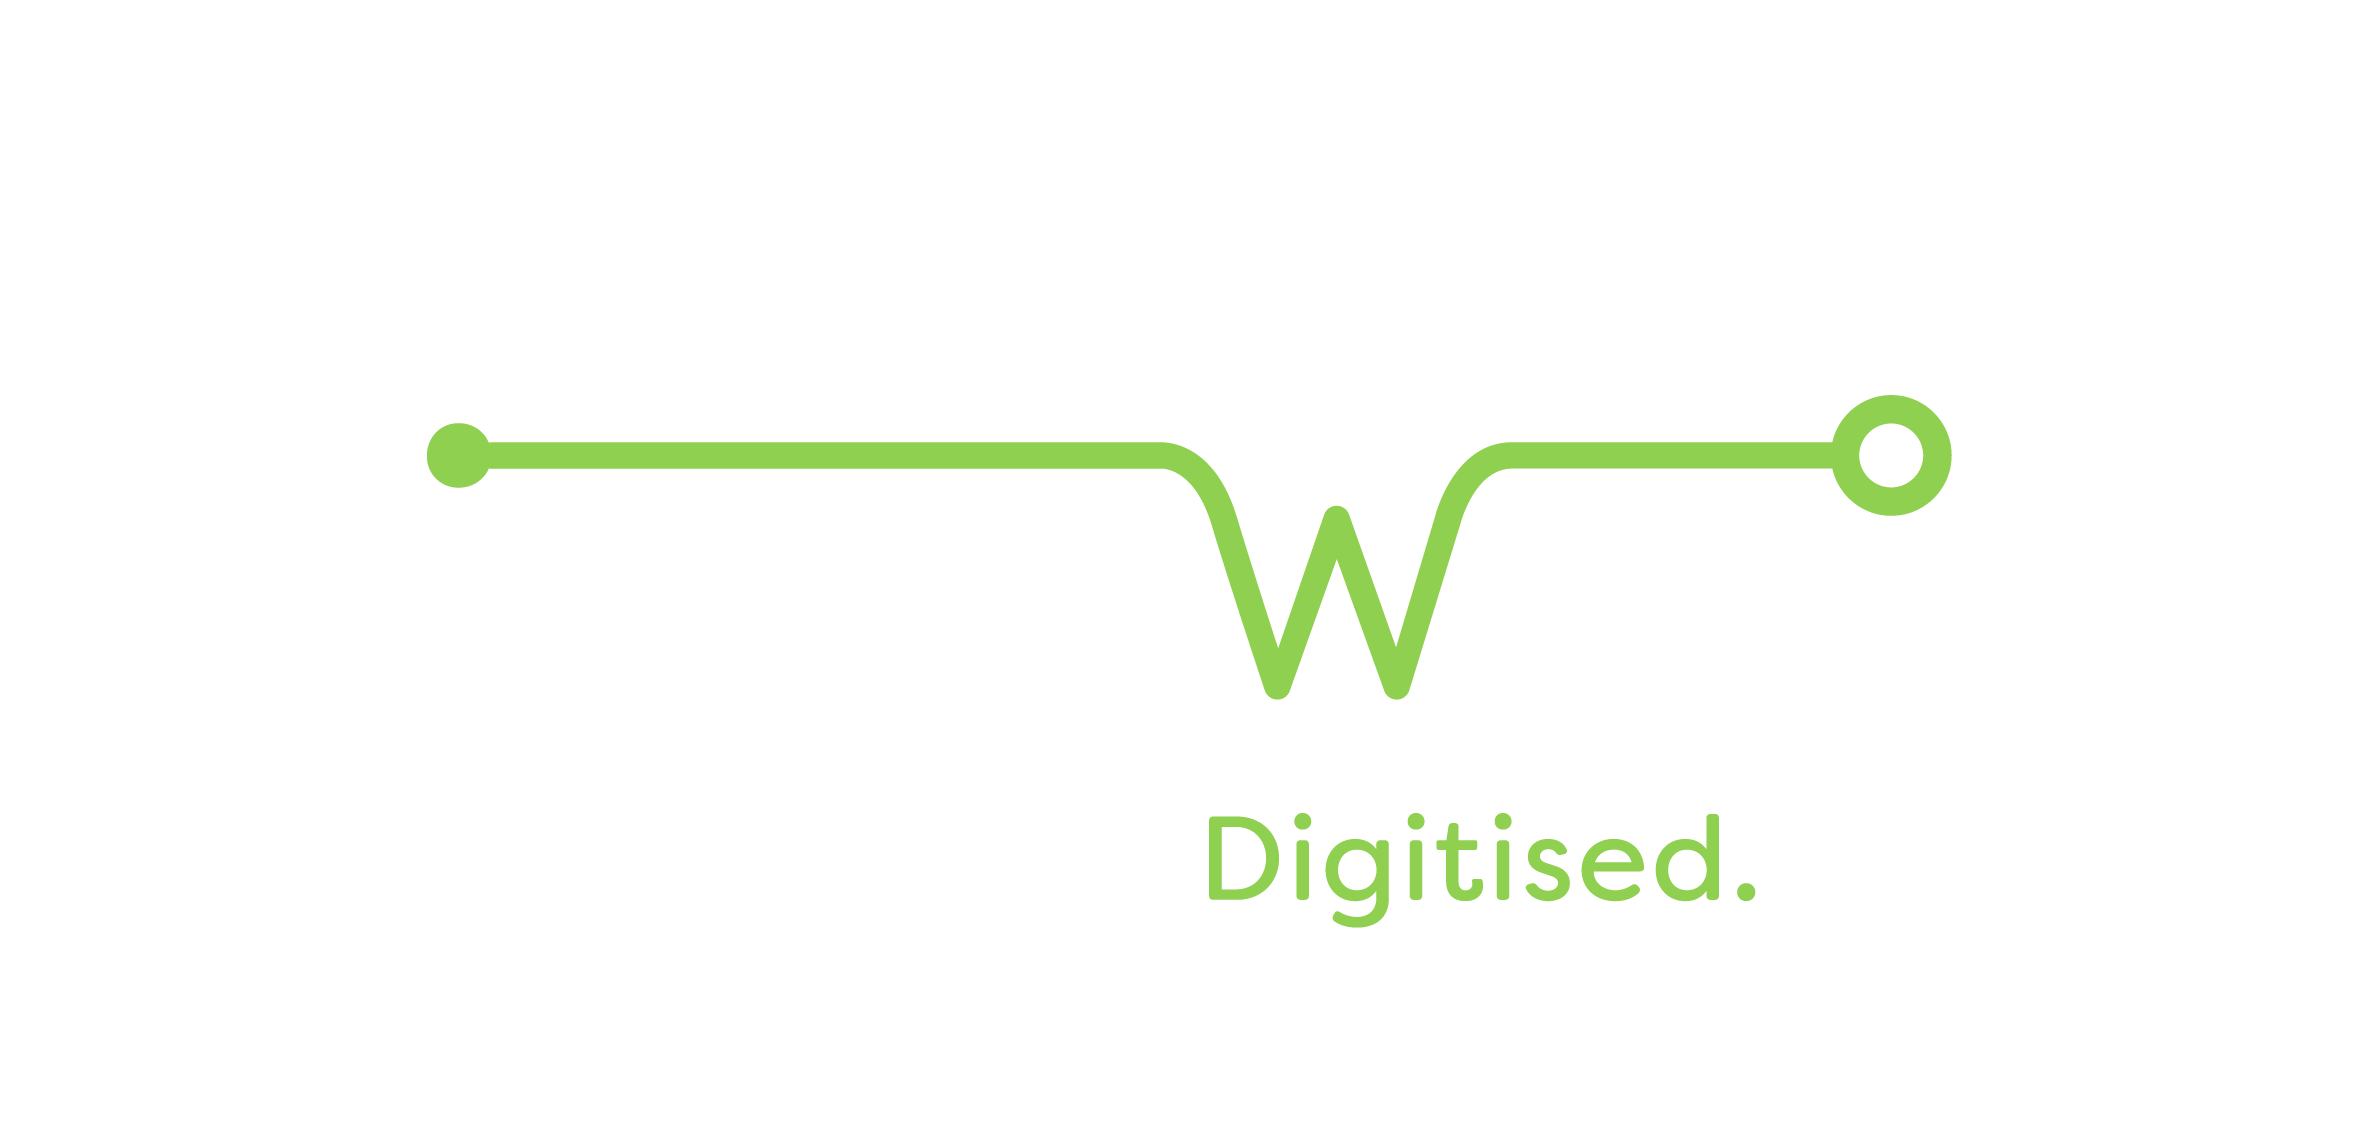 Visible Pathway